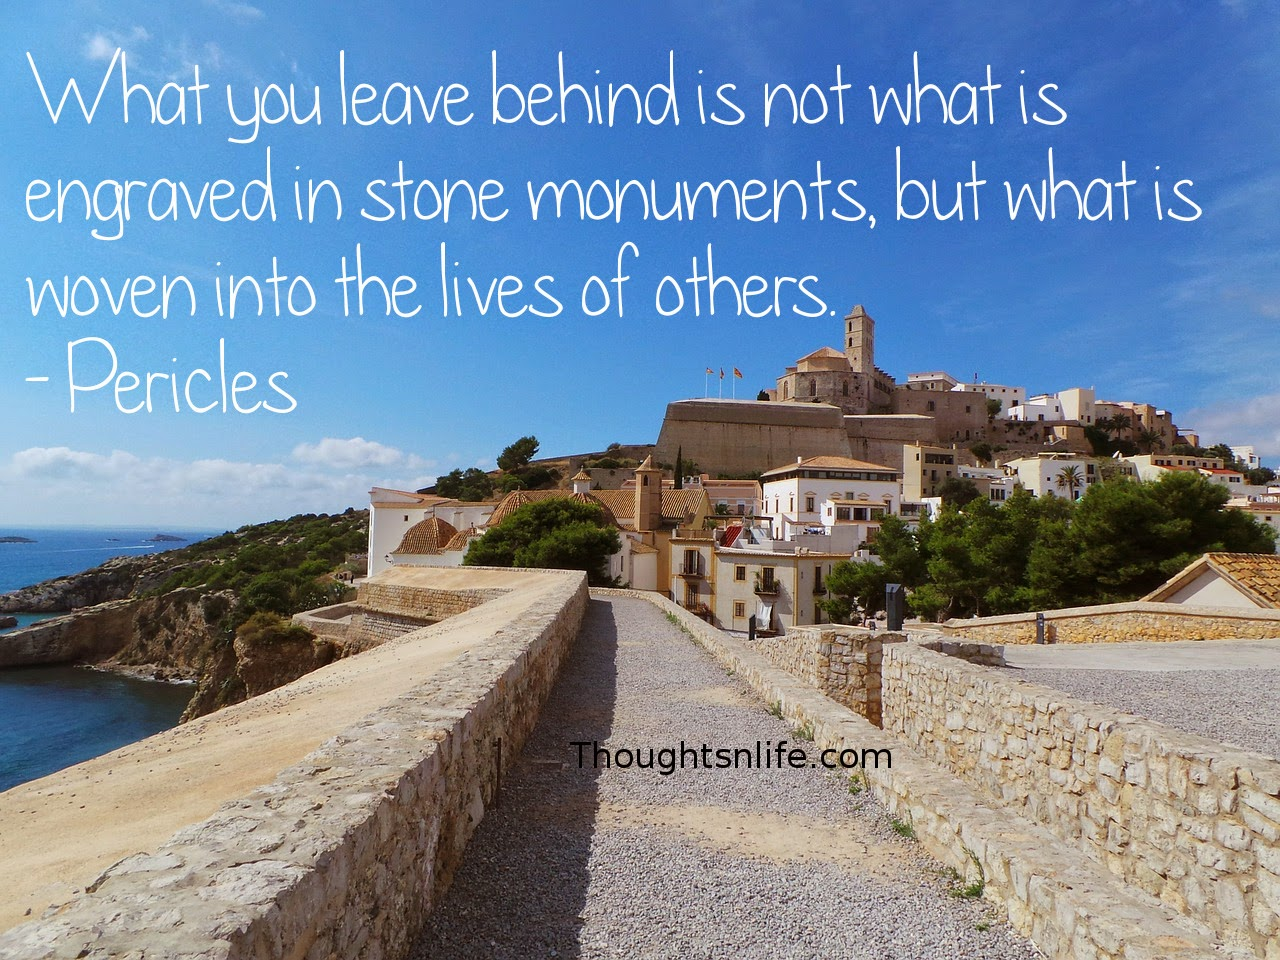 Thoughtsnlife.com: What you leave behind is not what is engraved in stone monuments, but what is woven into the lives of others. - Pericles